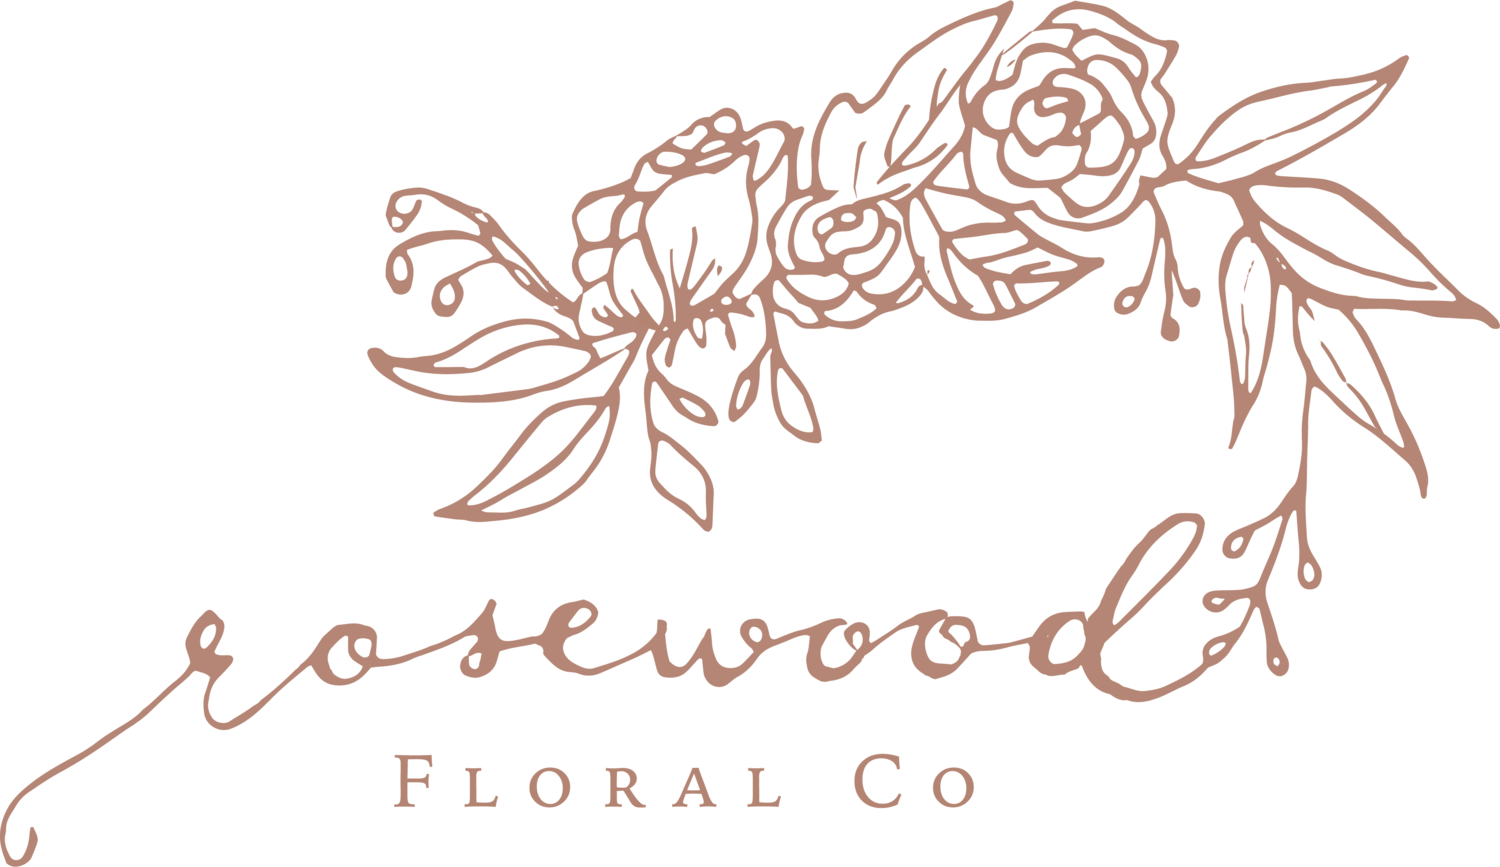 Rosewood Floral Co